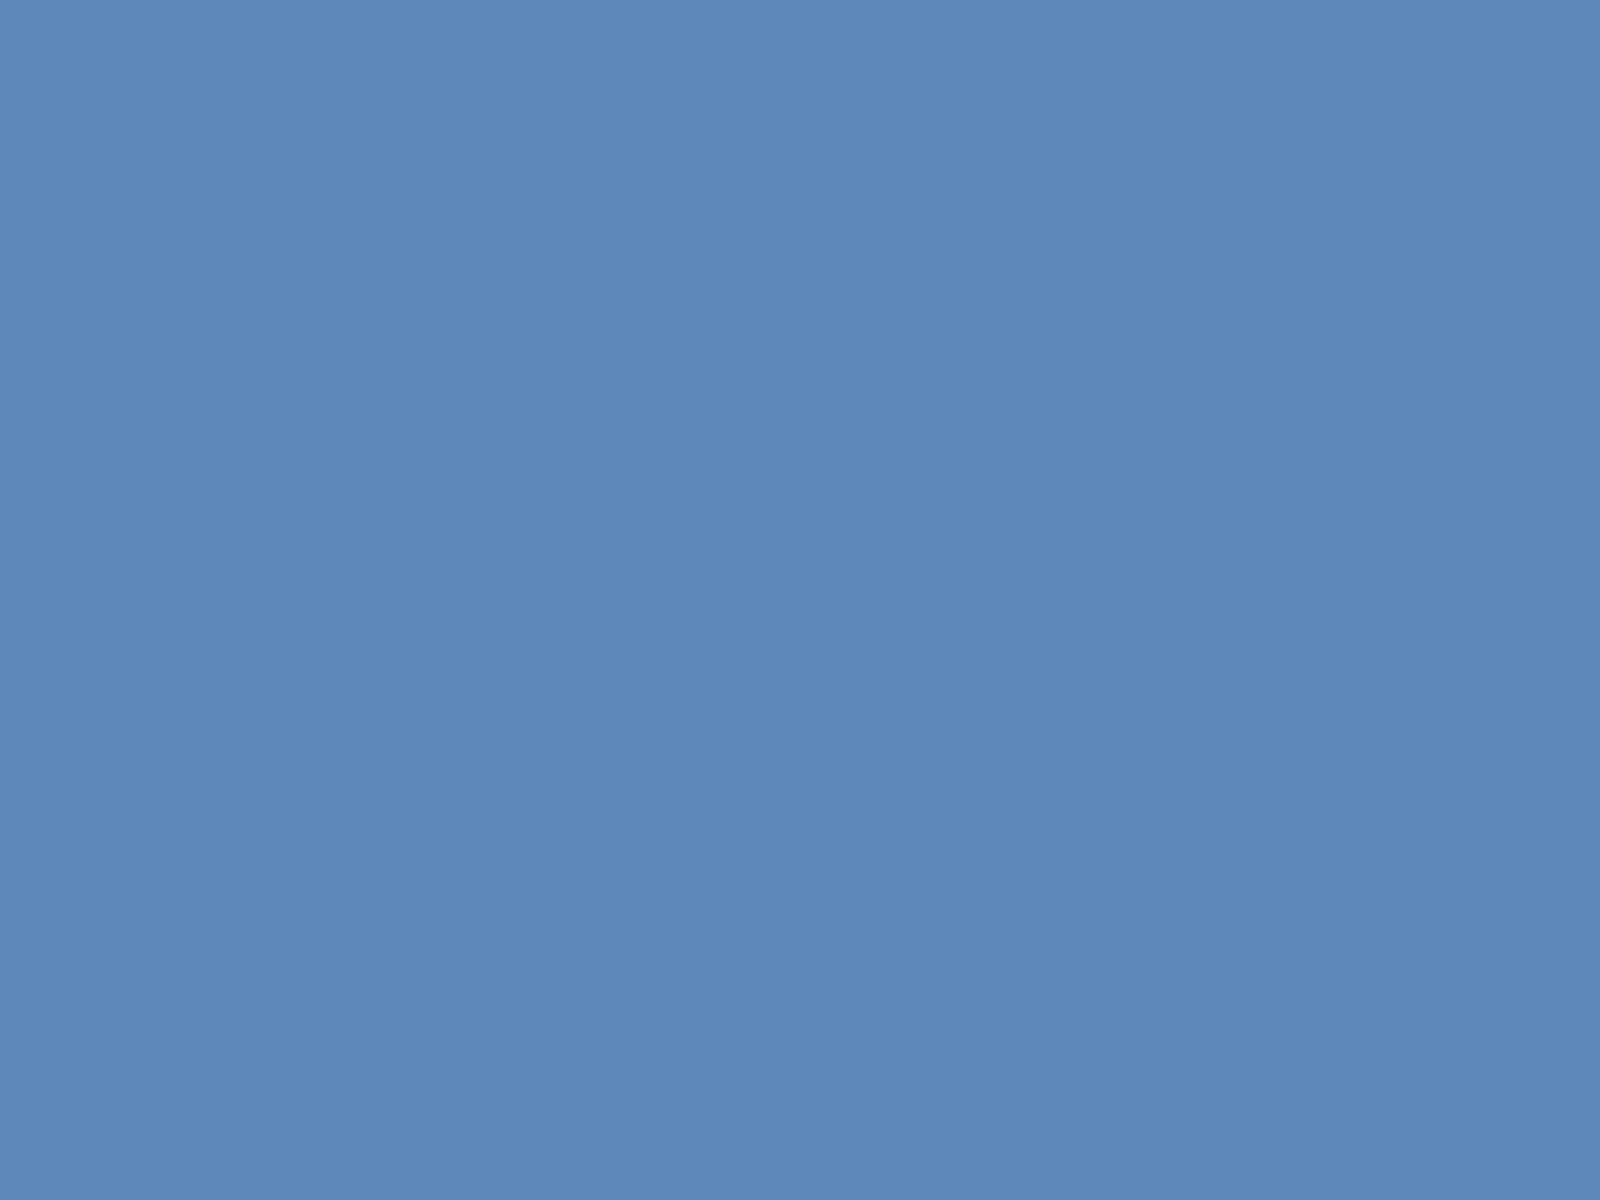 1600x1200 silver lake blue solid color background